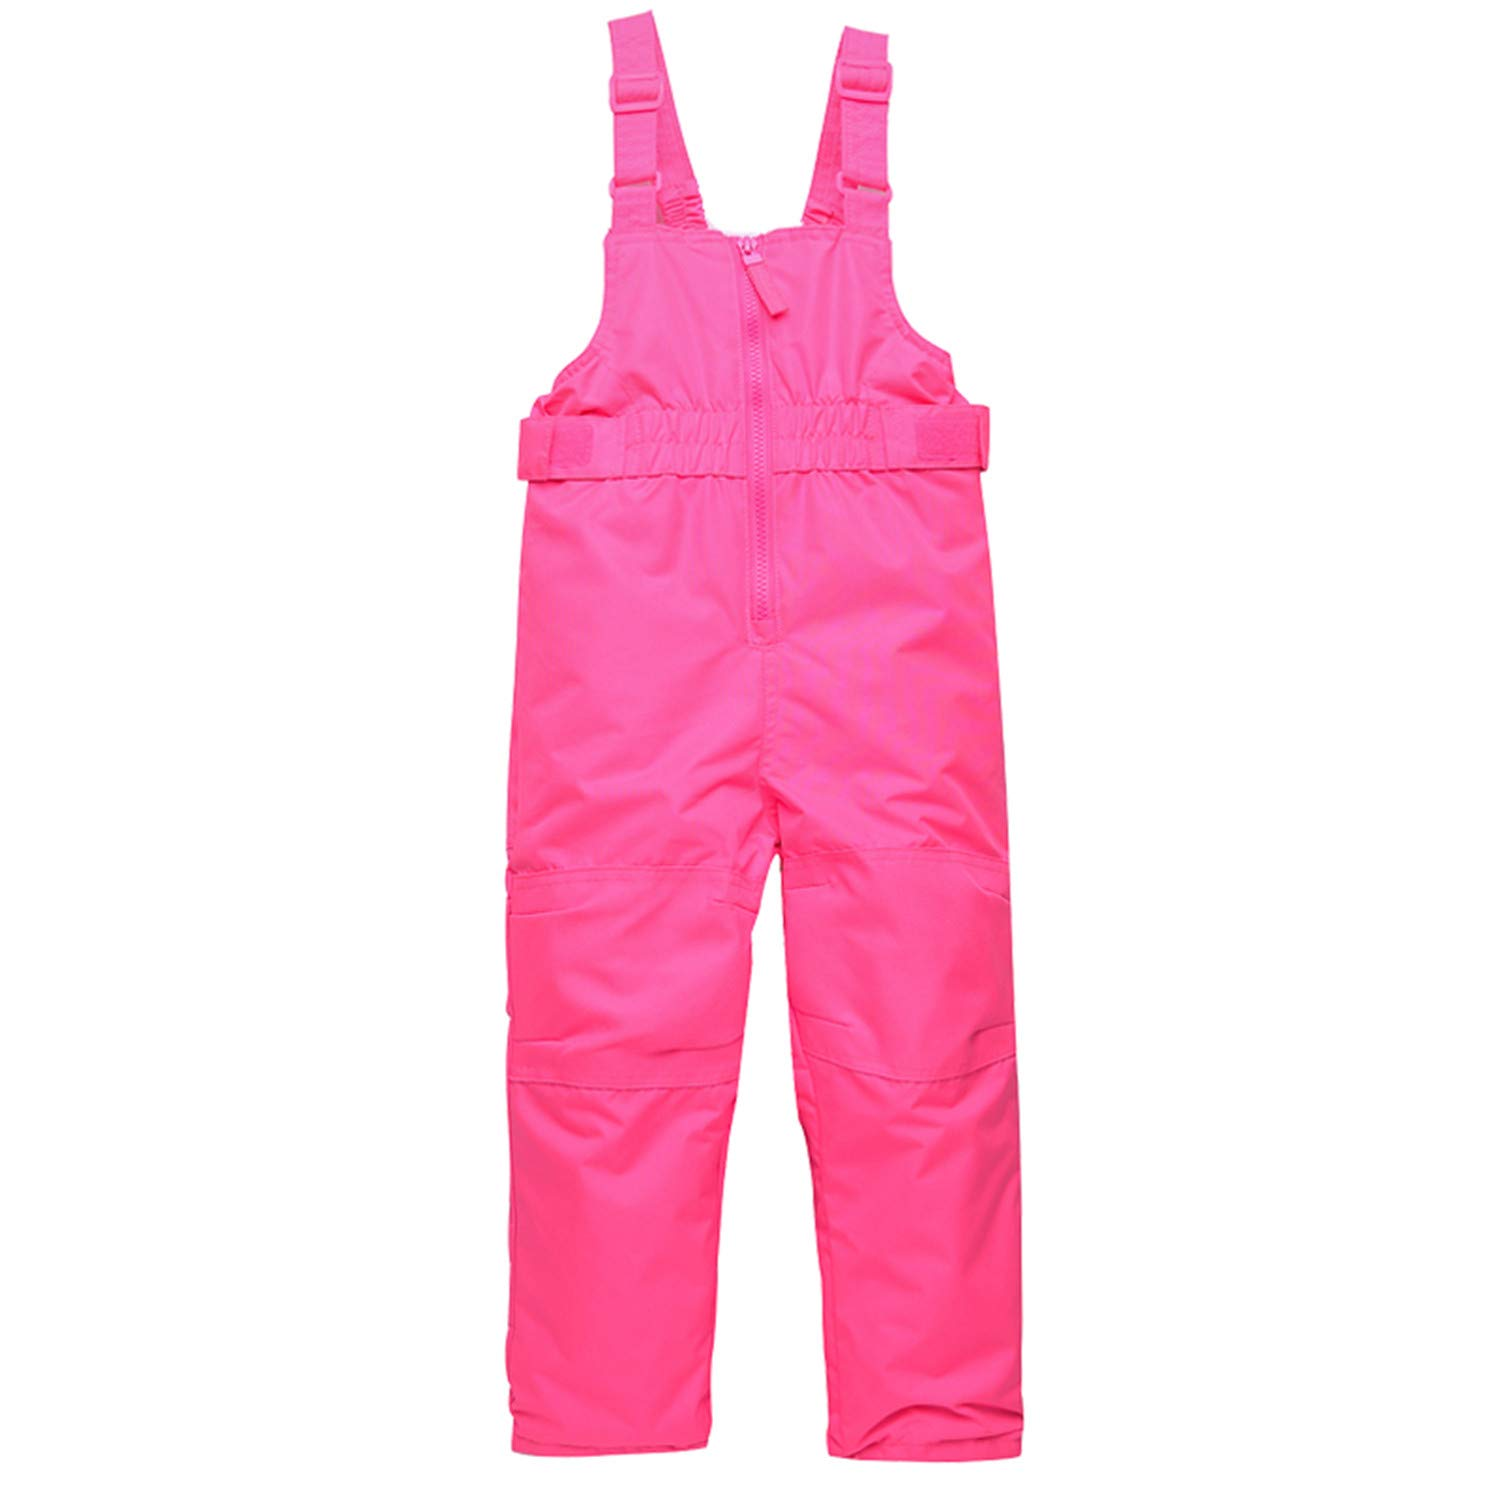 4780a1ac3 Mrxcff New Children Snow Skiing Pants Outdoor Warm Snowboarding Trousers  Waterproof Breathable Winter Ski Pant For Girl Boy Pink 2T: Amazon.ca:  Clothing & ...